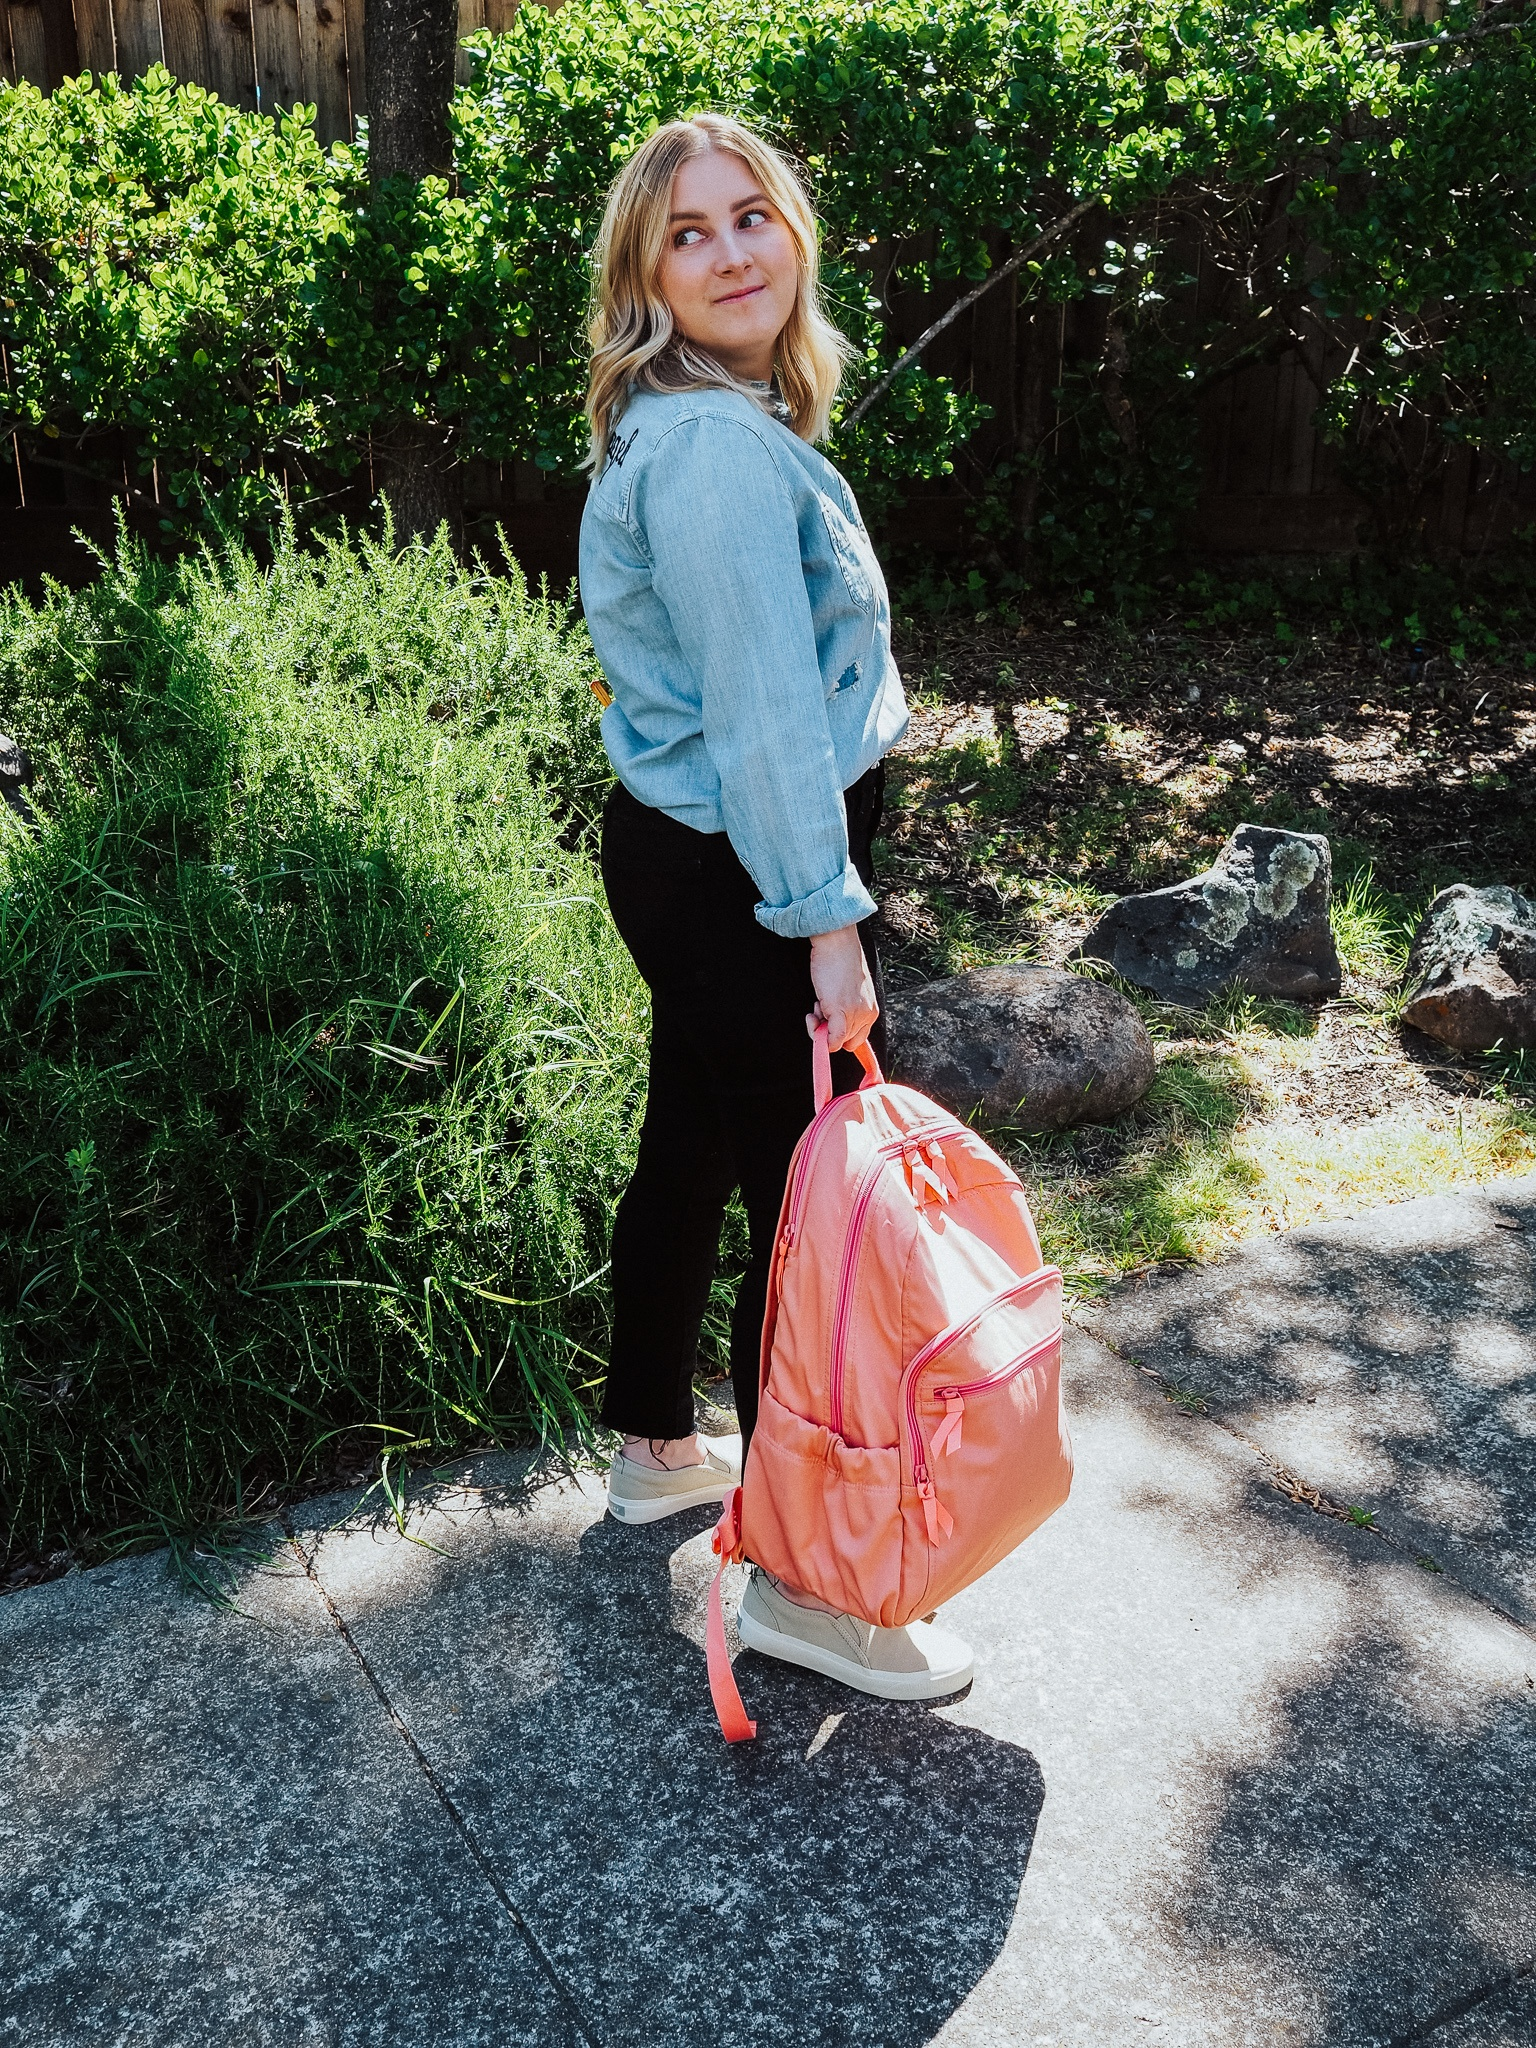 Affordable eco friendly bags can be tough to find! Vera Bradley's new Cotton ReIMAGINED line is packed with eco friendly bags at great prices.